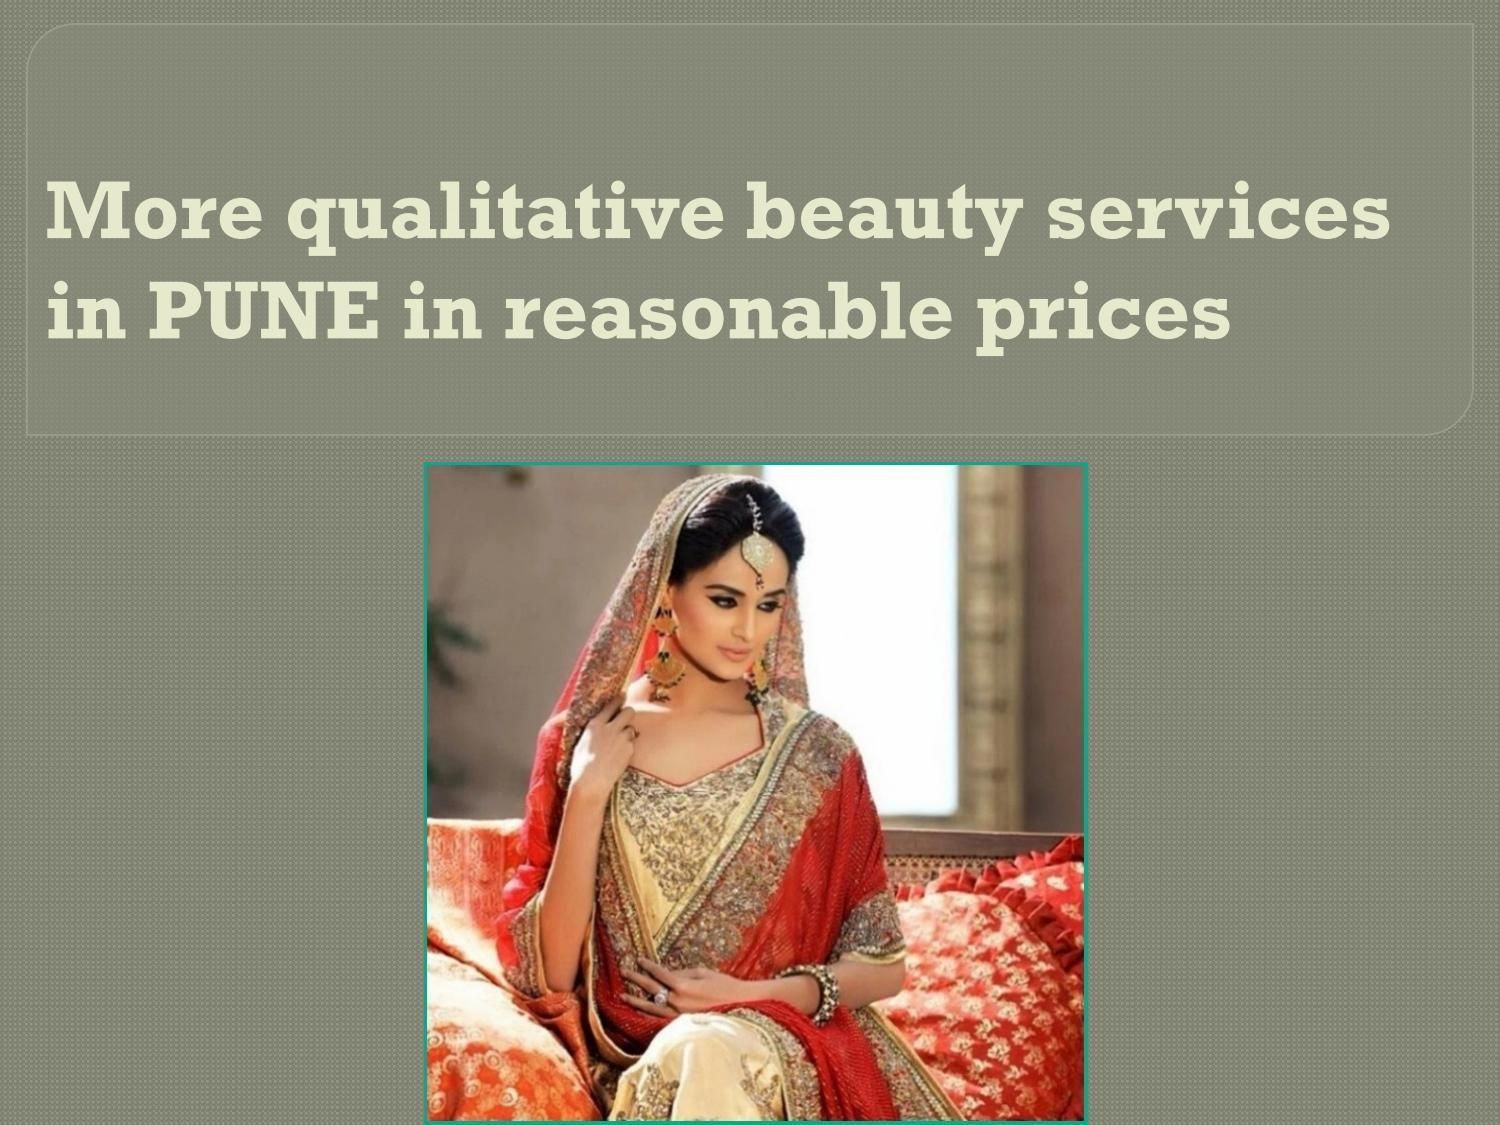 morethanphenomenal Beauty services, Best bridal makeup